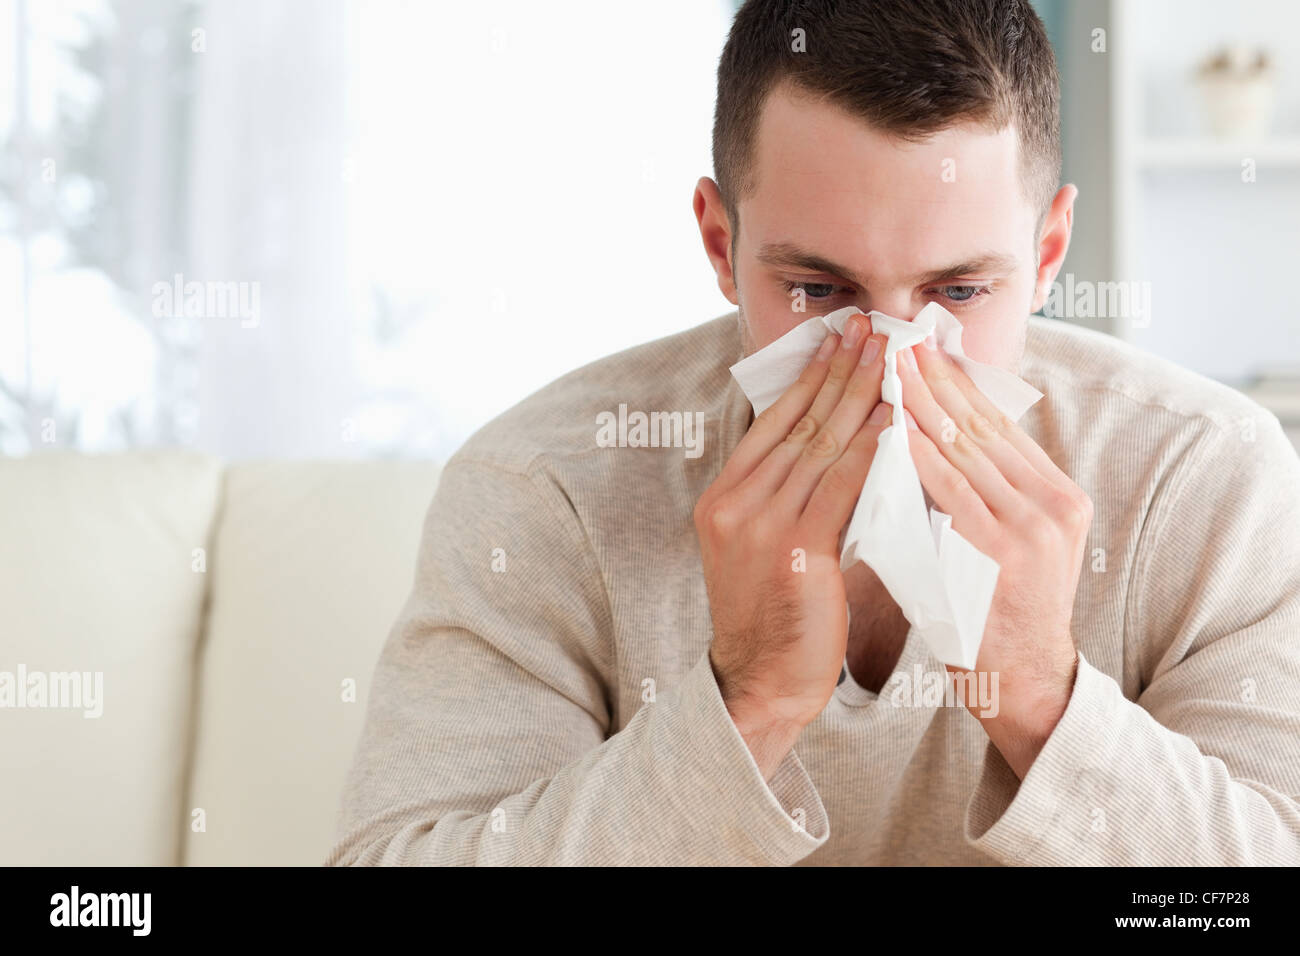 Tired man blowing his nose - Stock Image